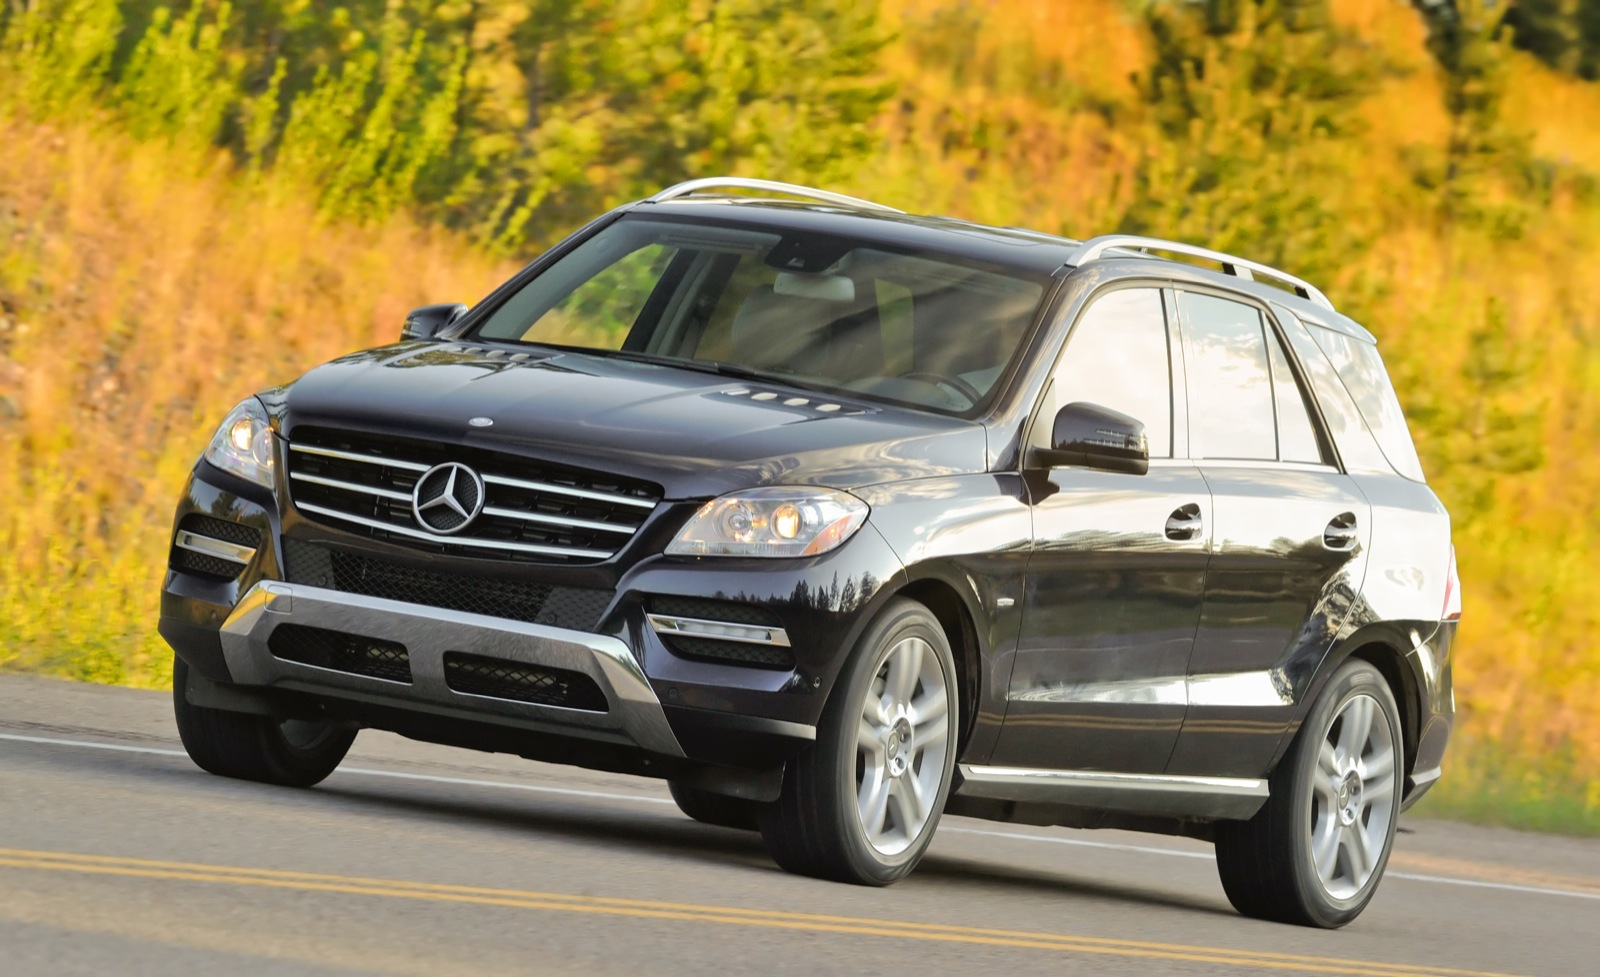 2012 mercedes benz m class review ratings specs prices for Price of mercedes benz ml350